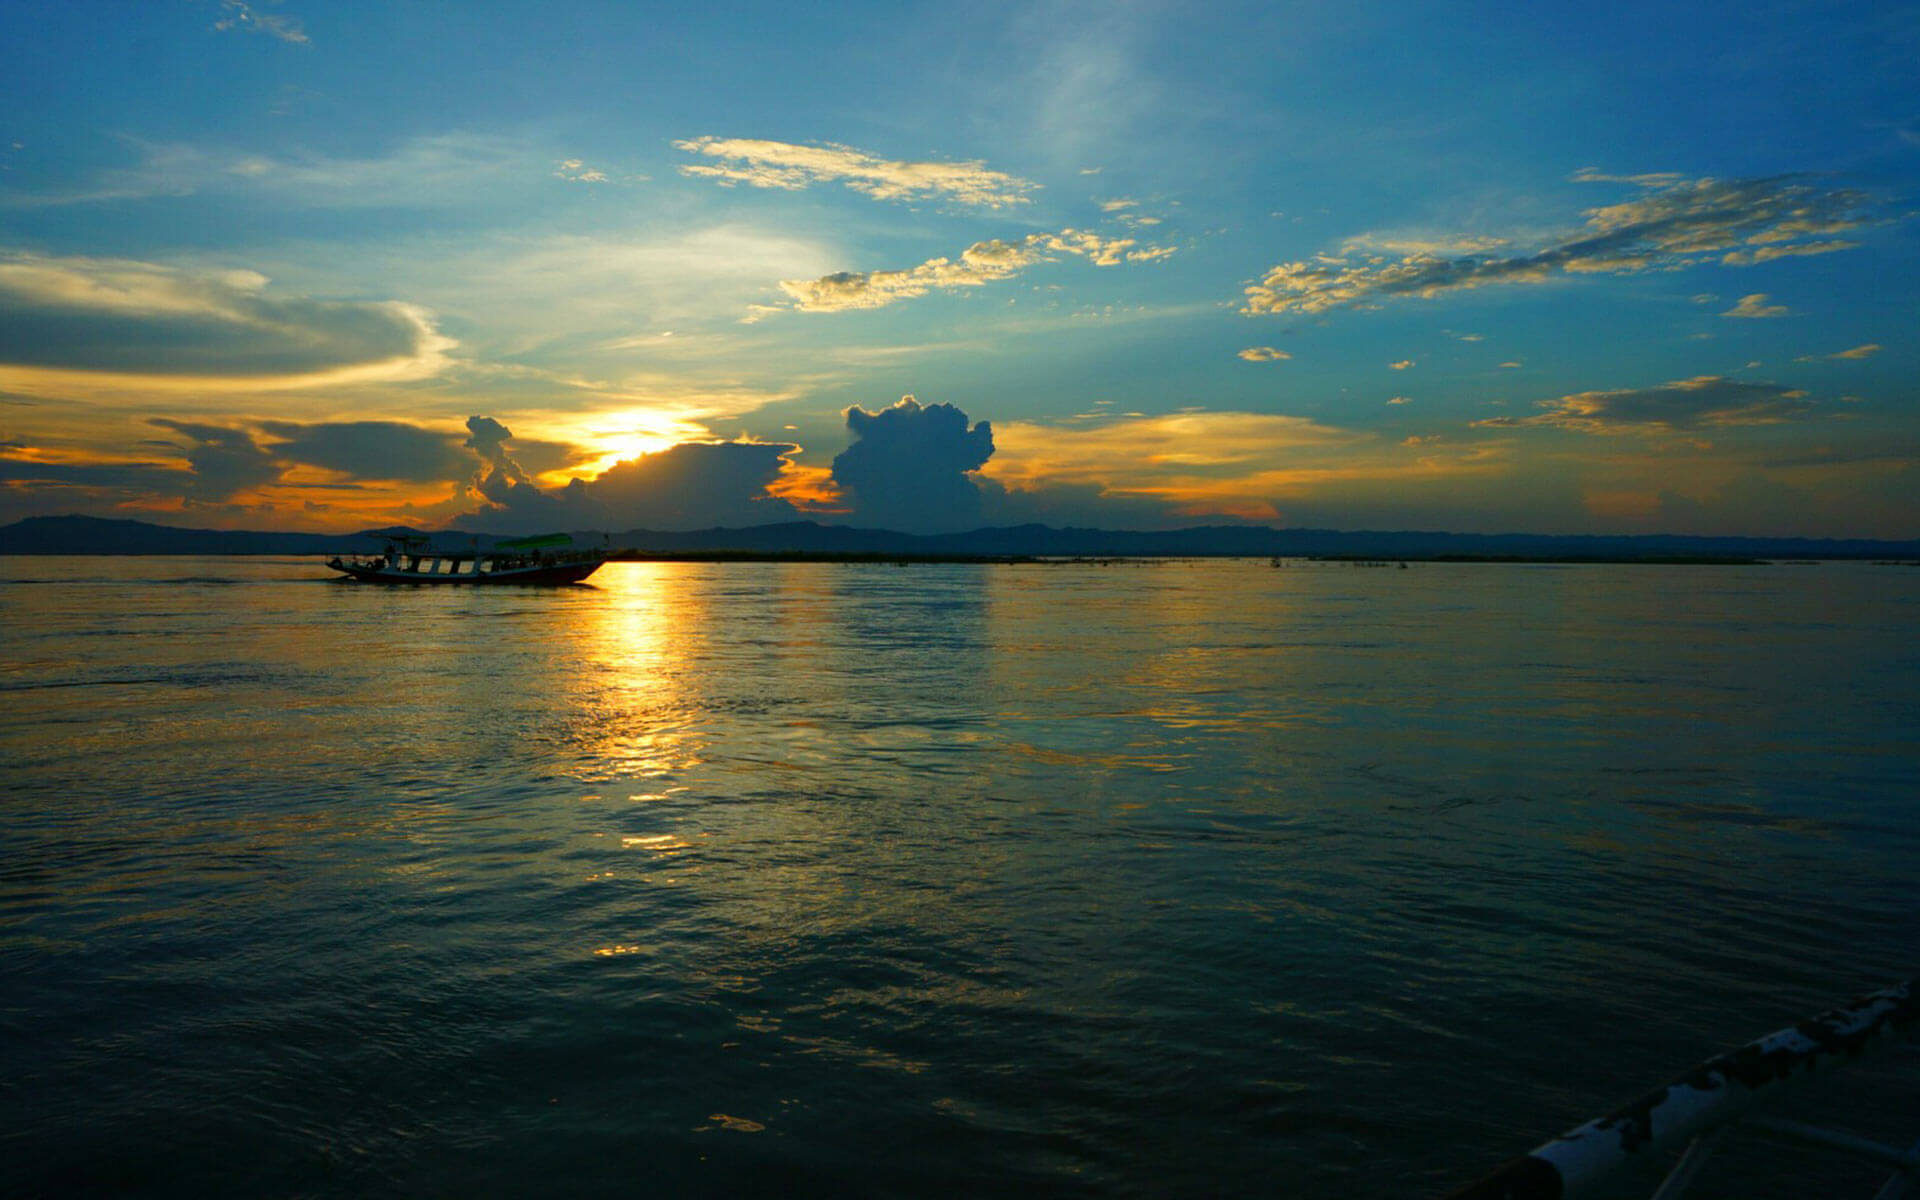 sunset in Irrawaddy